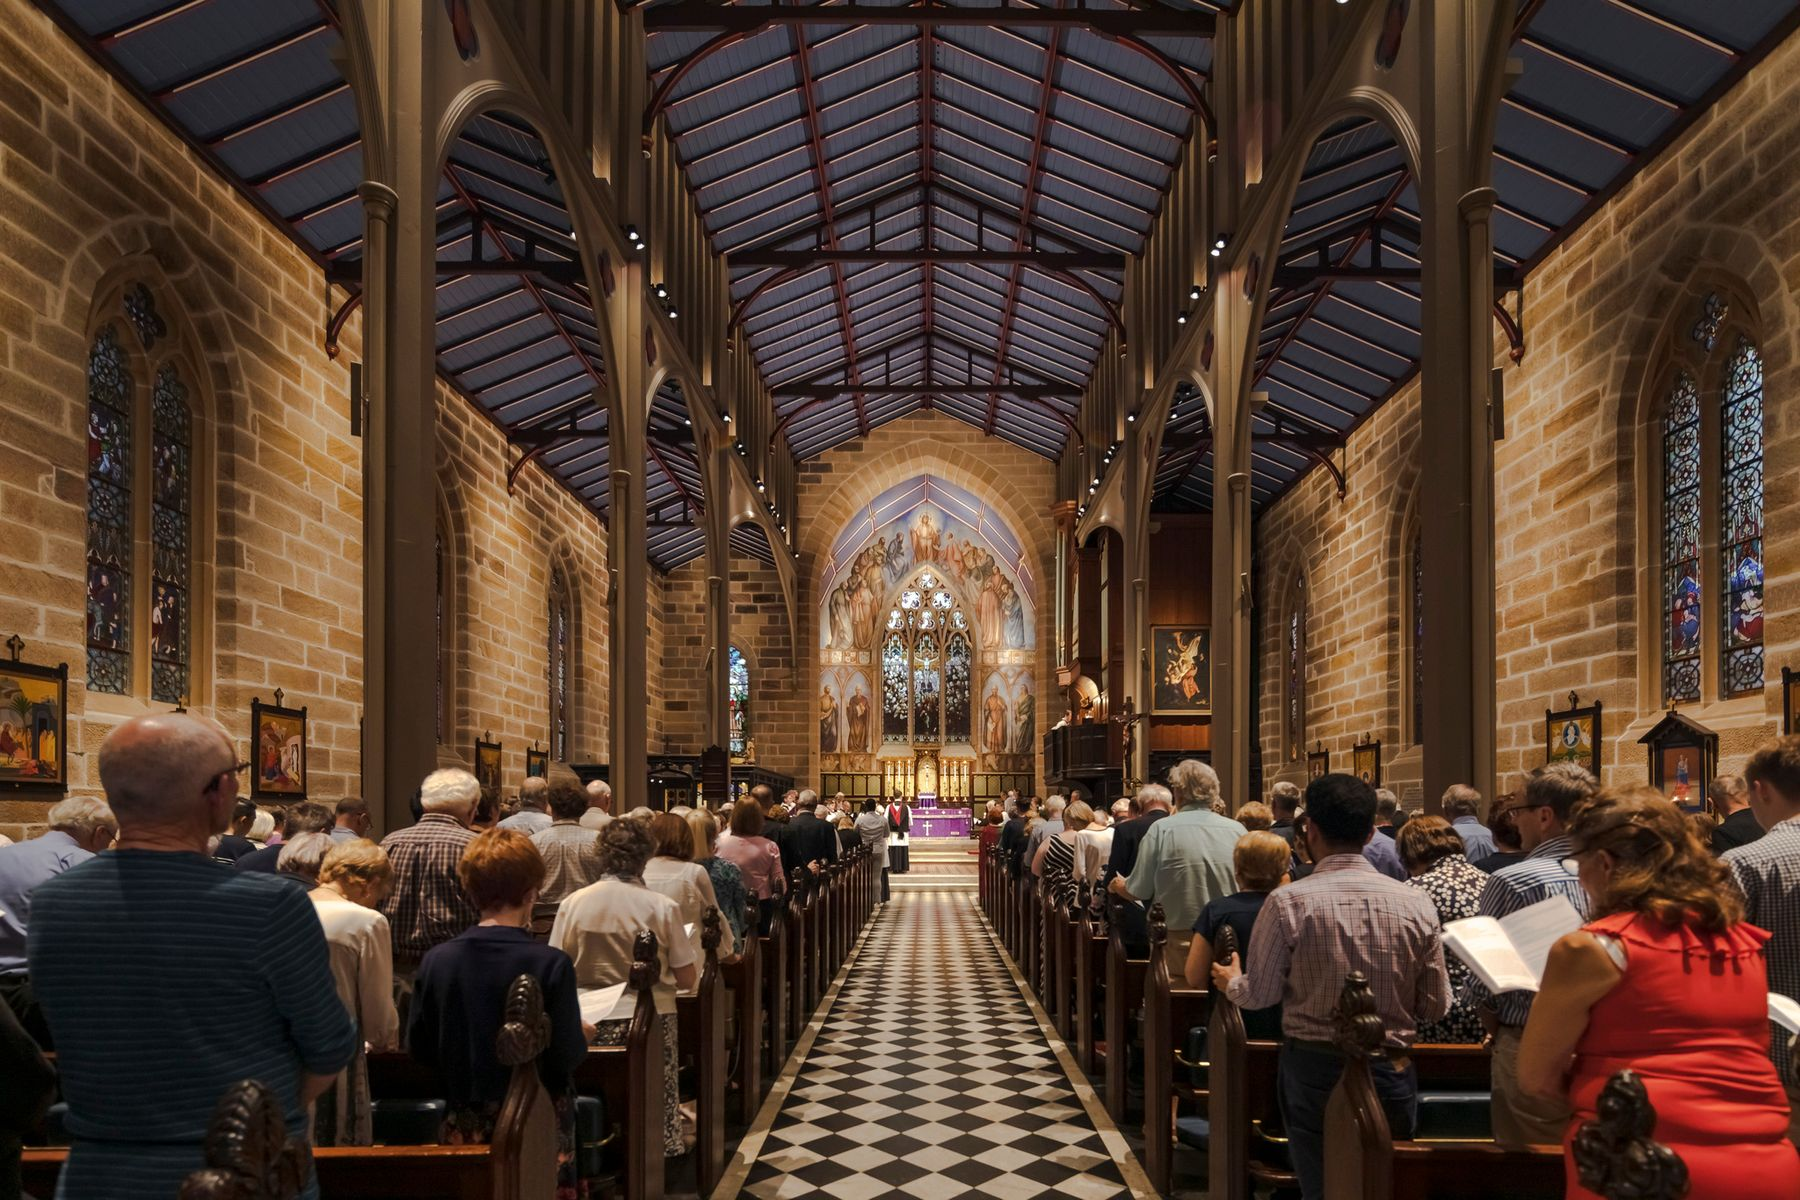 Christ Church St Laurence, Sydney. Architecture: Jean Wahl. Lighting design: Frederica Perey. Electrical engineering: Jadecross. Photography: Jackie Chan, Sydney.